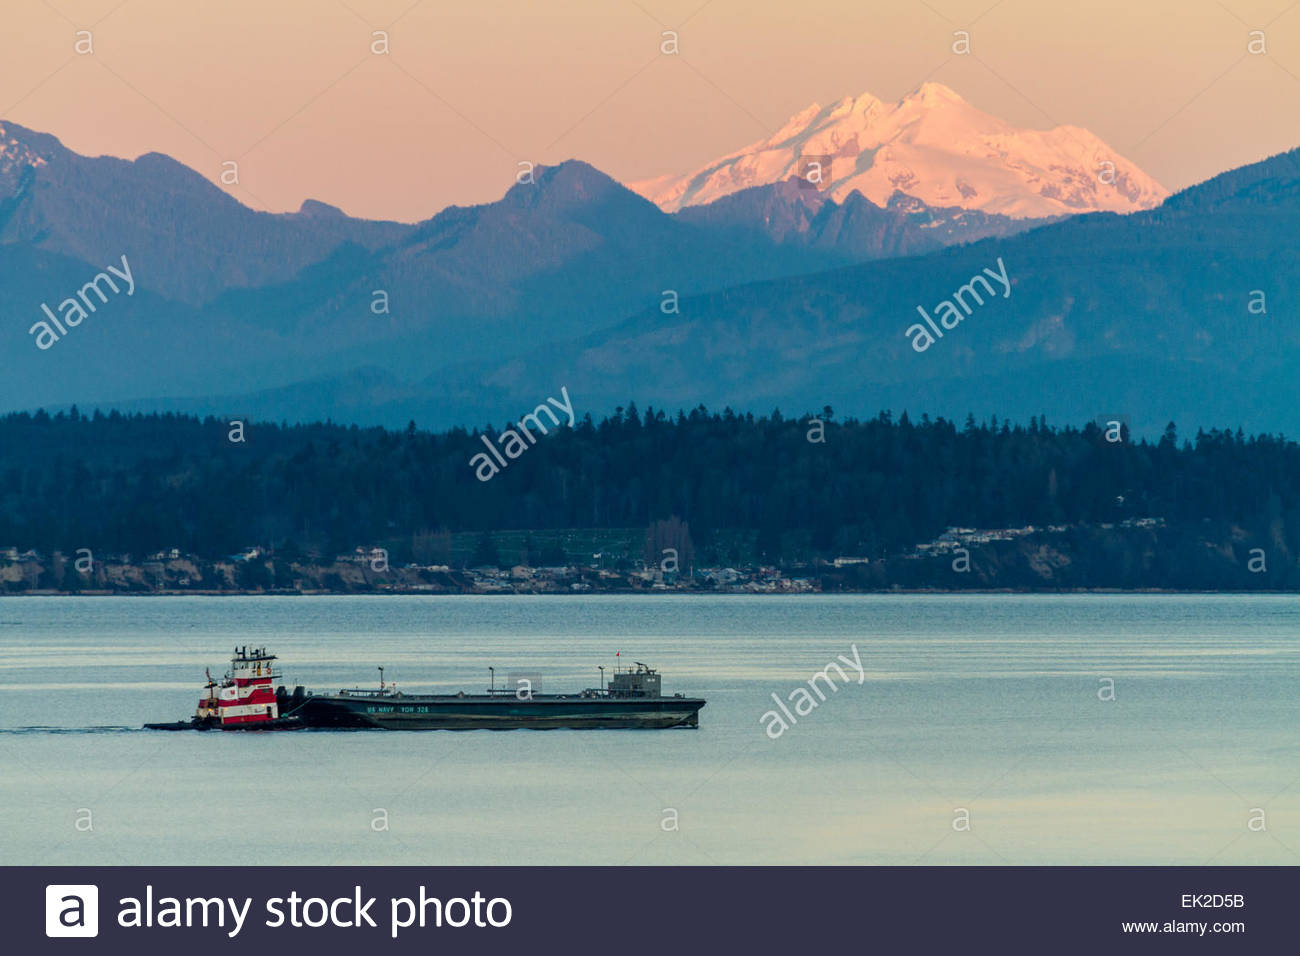 View of US Navy ship with mountains in background at sunrise Stock Photo